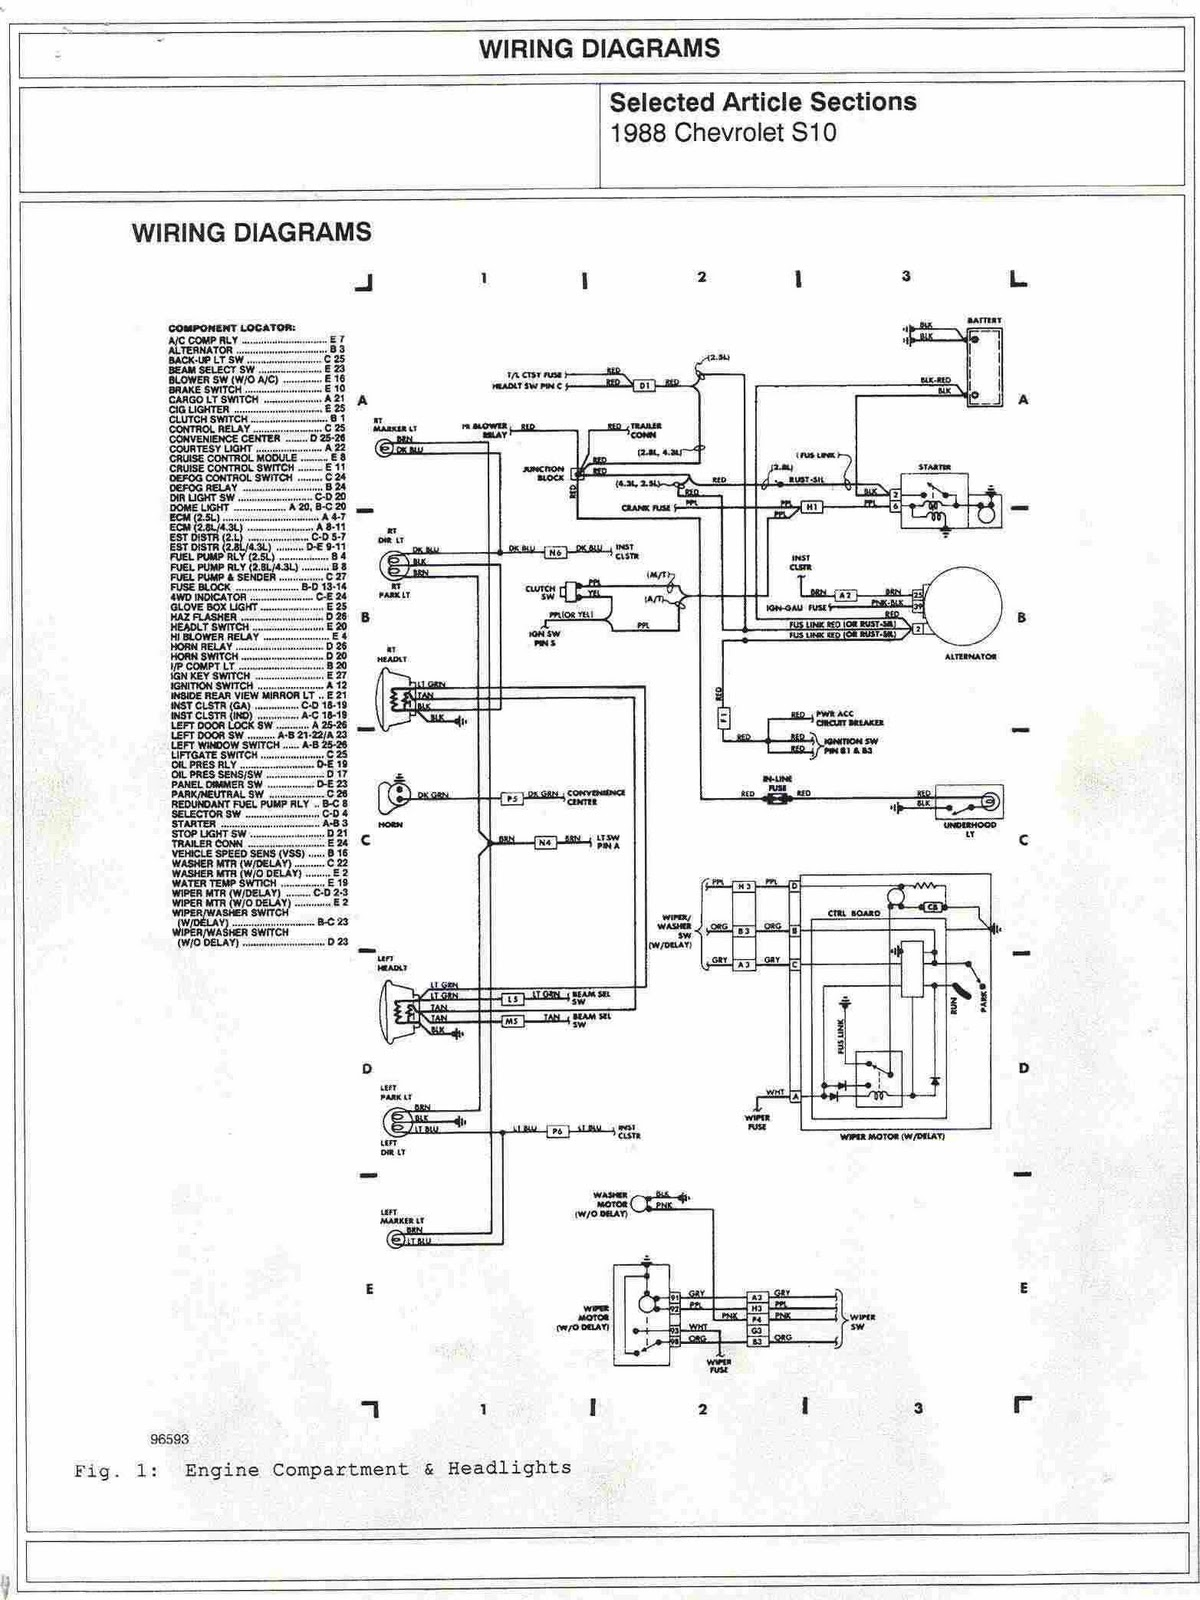 1988+Chevrolet+S10+Engine+Compartment+and+Headlights+Wiring+Diagrams 95 s10 wiring diagram 95 tahoe wiring diagram \u2022 wiring diagrams 1957 chevy truck turn signal wiring diagram at pacquiaovsvargaslive.co